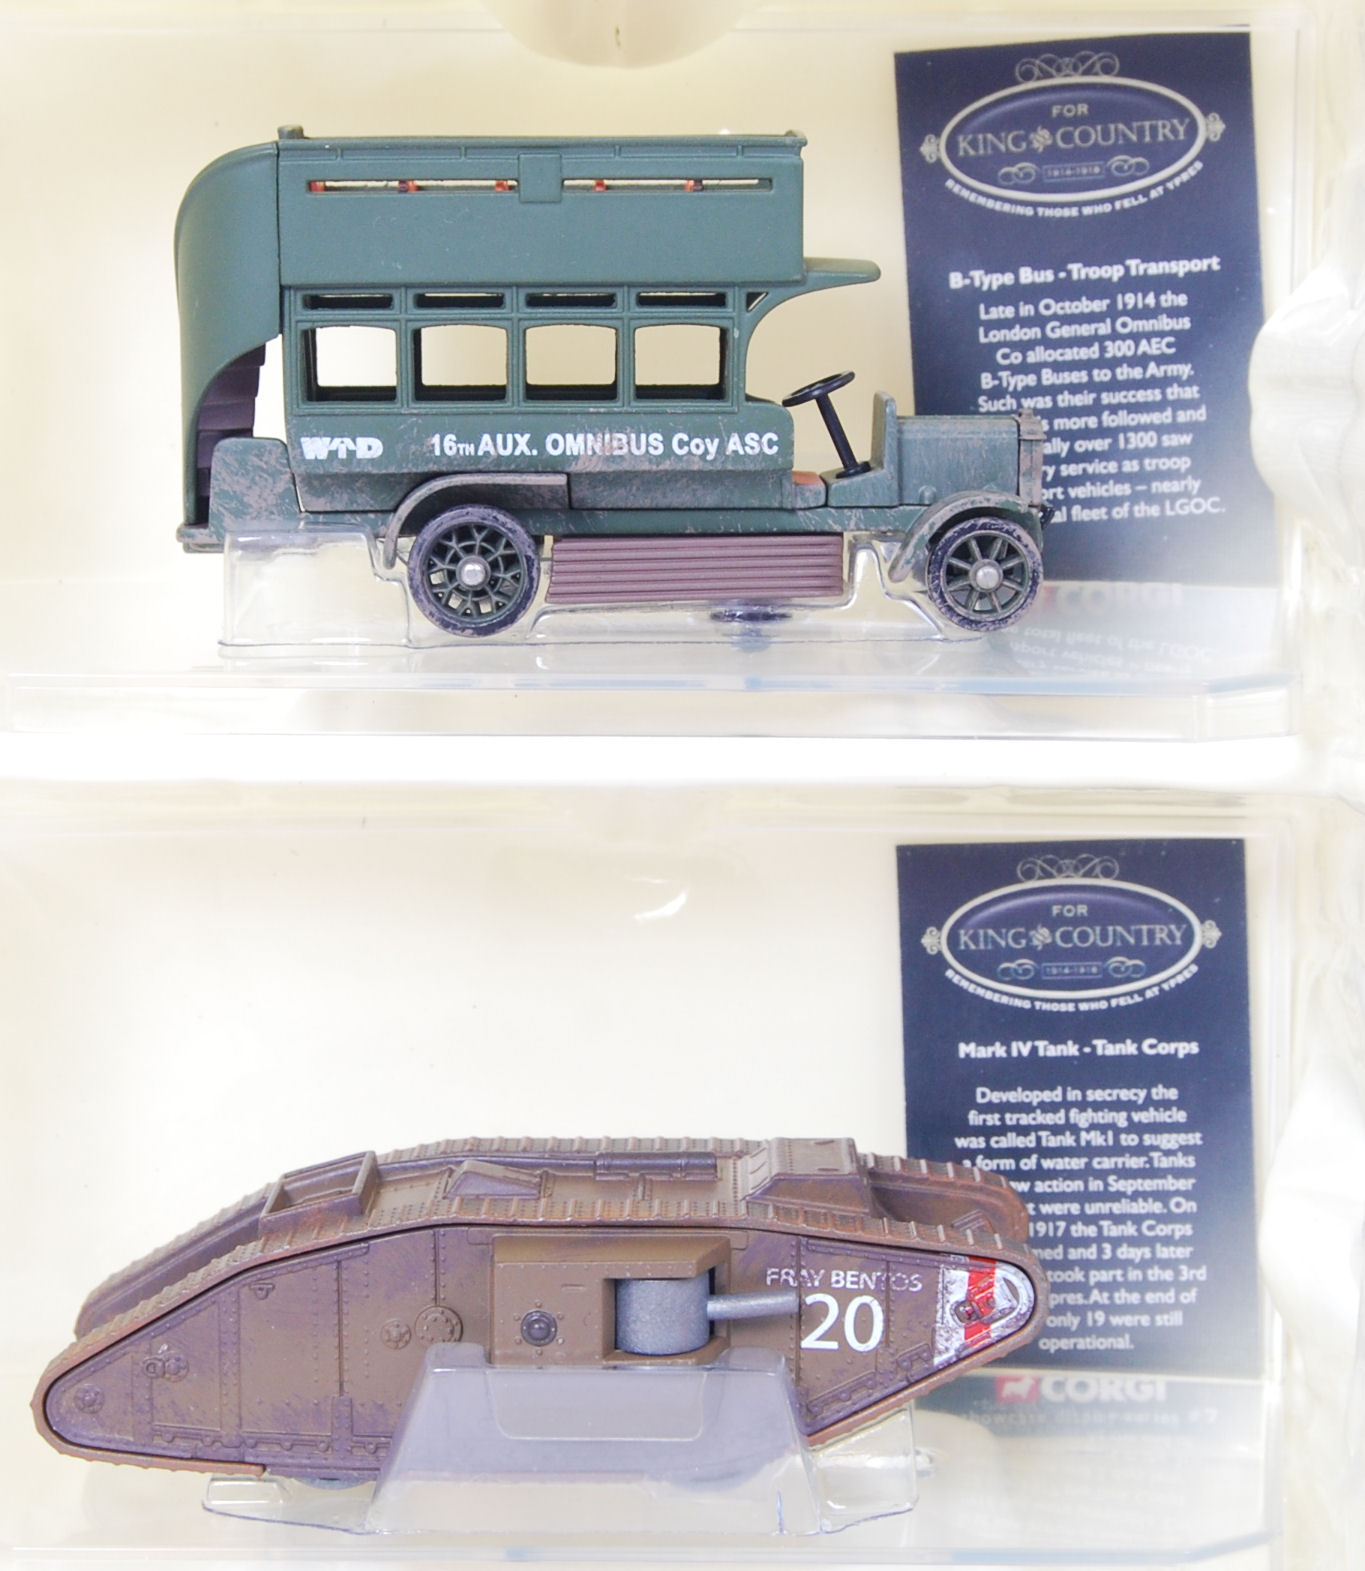 Lot 3 - CORGI KING & COUNTRY SET